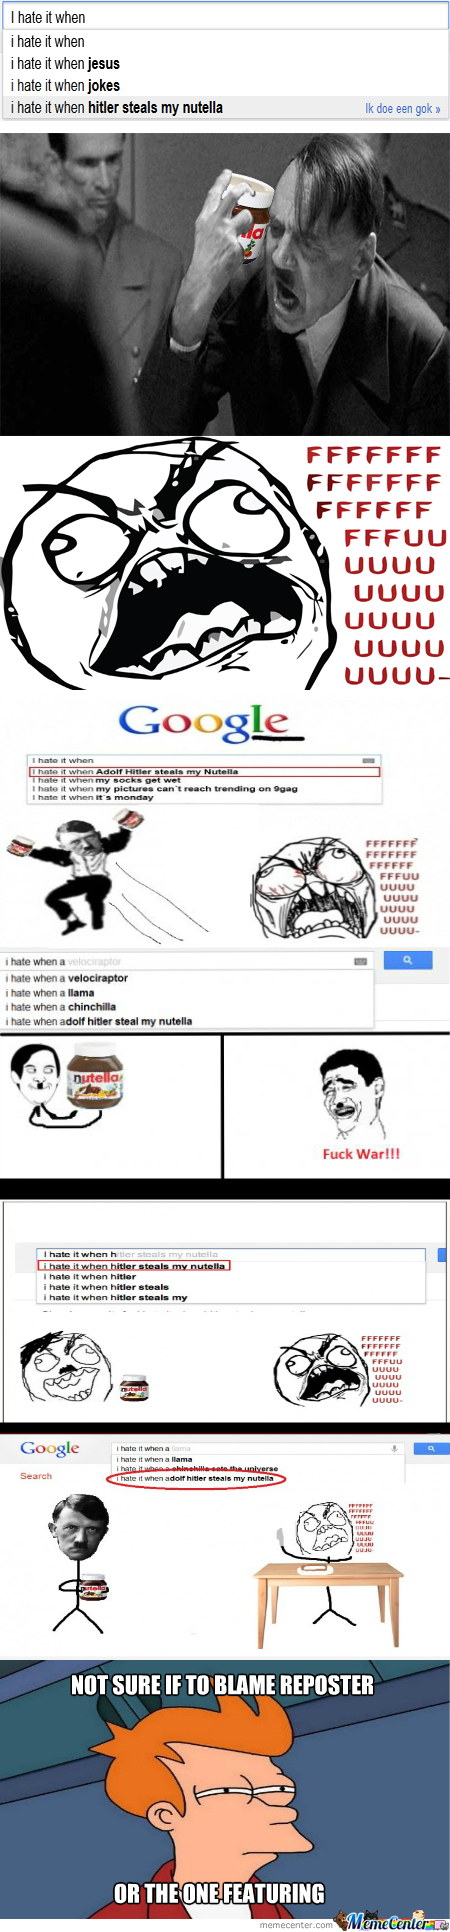 [RMX] I Hate It When Hitler Steals My Nutella